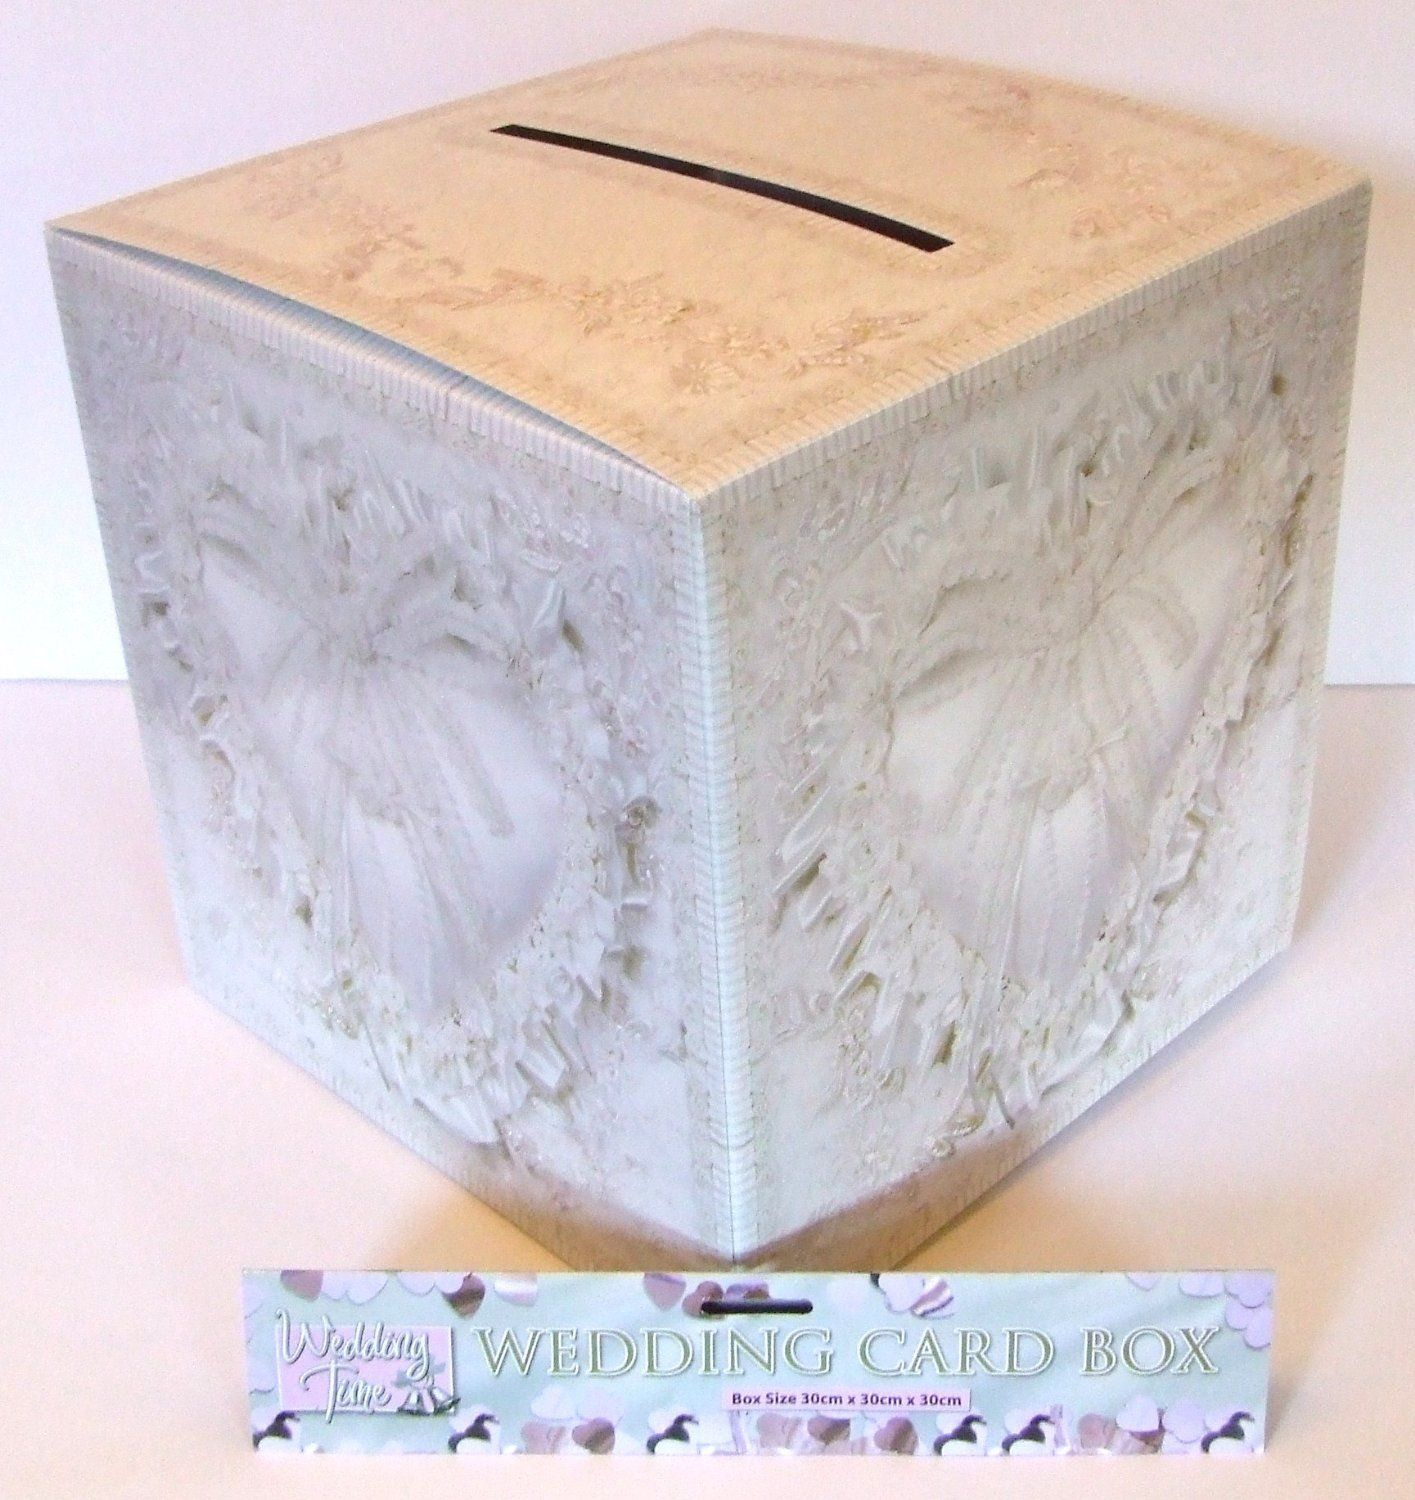 Wedding Gift Card Box Uk : Wedding Card Post Box, Wedding Favours, Wedding Gifts, Wishing Well ...